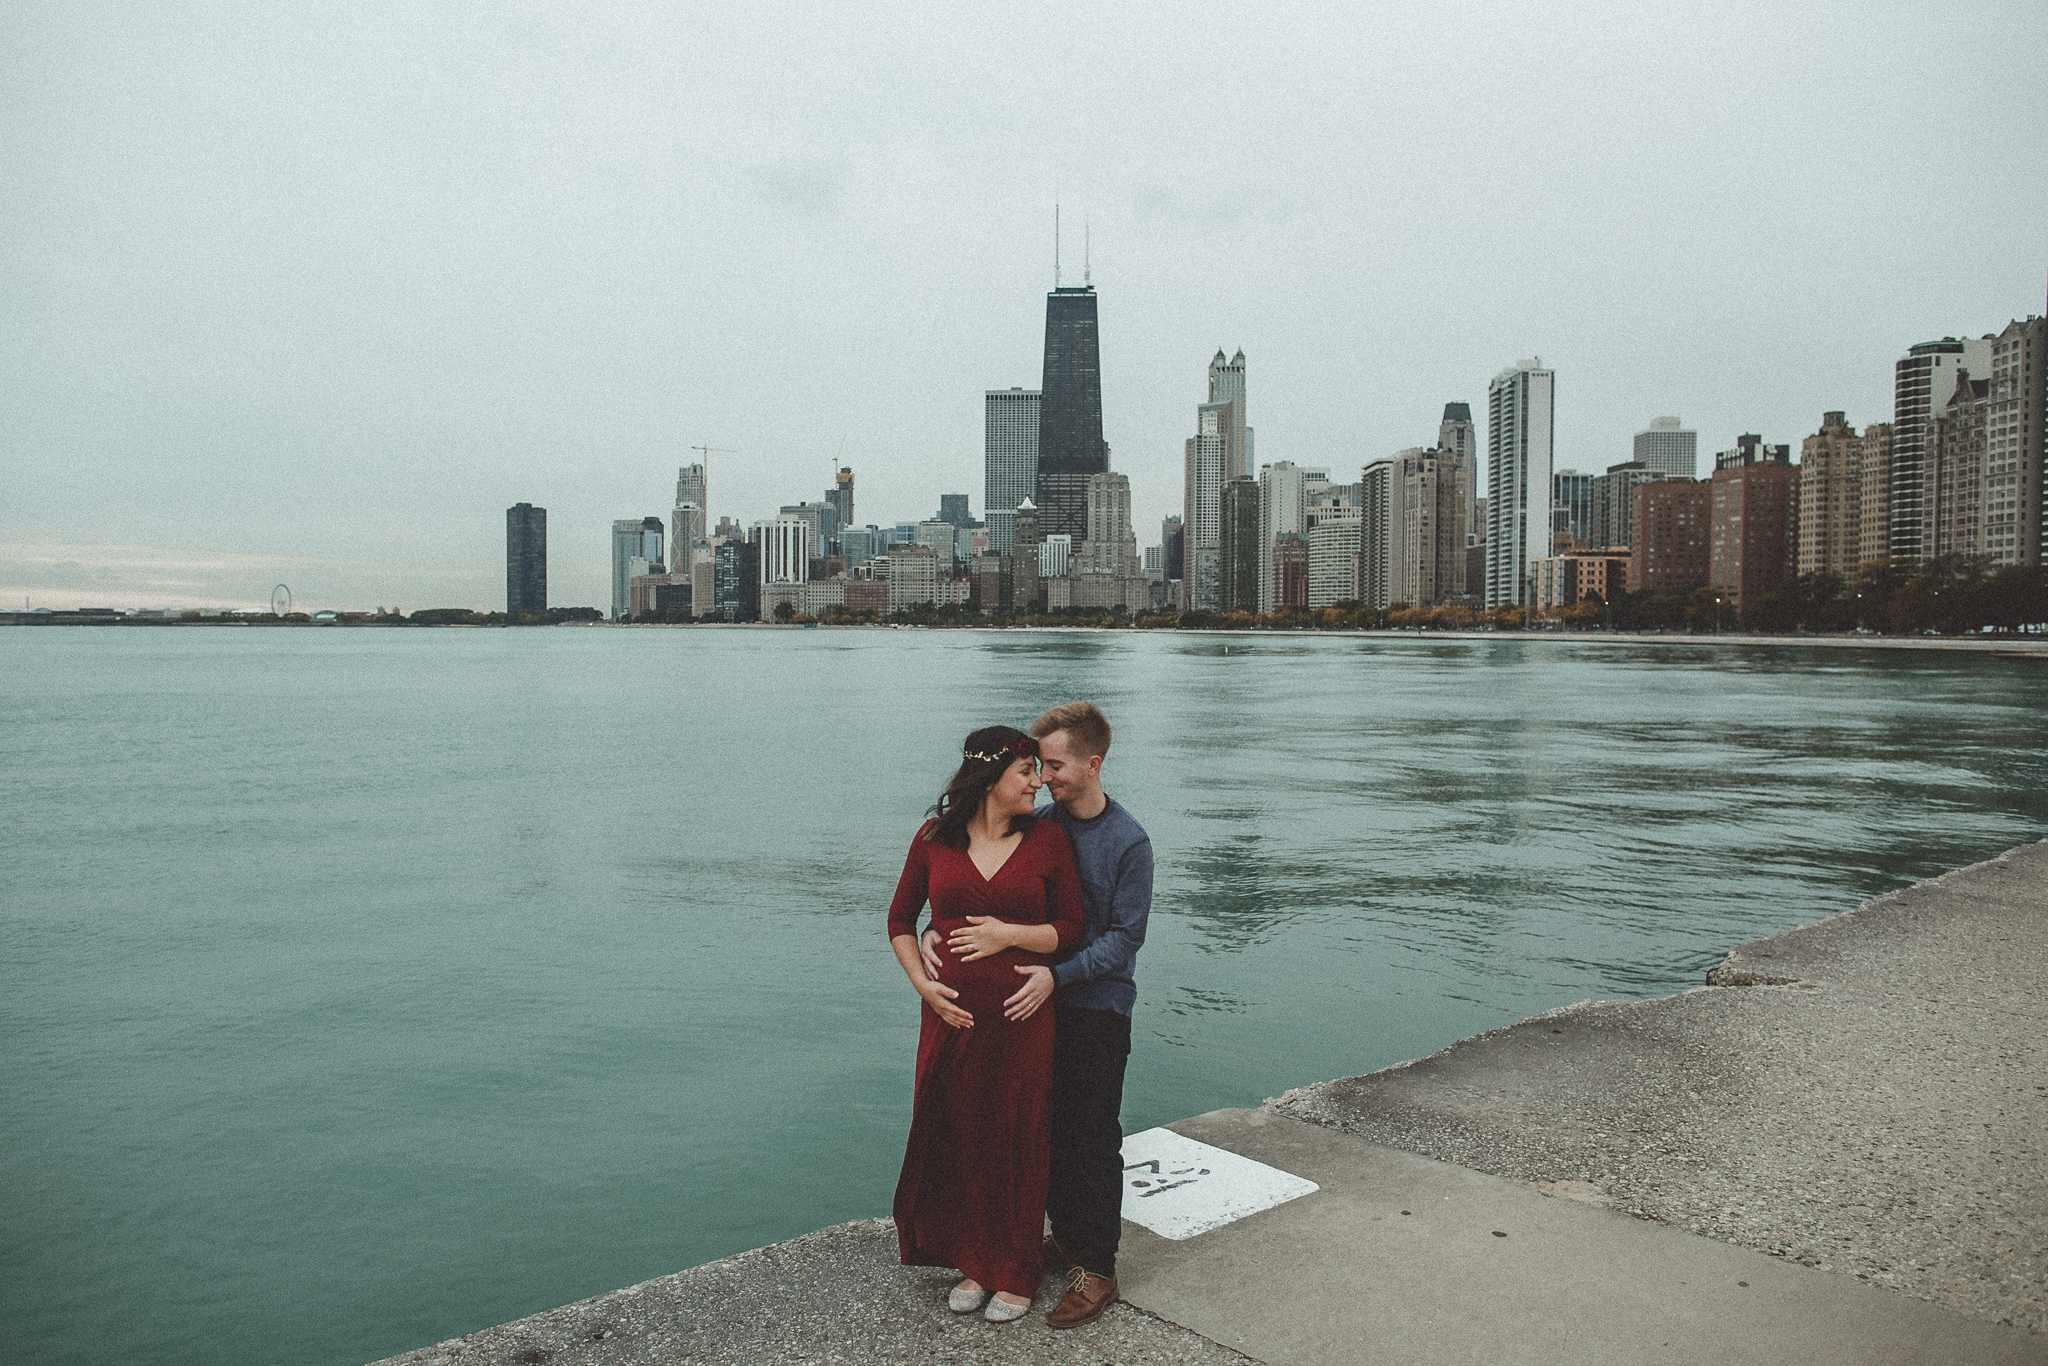 chicago_lincoln_park_family_maternity_photograper_0025.jpg